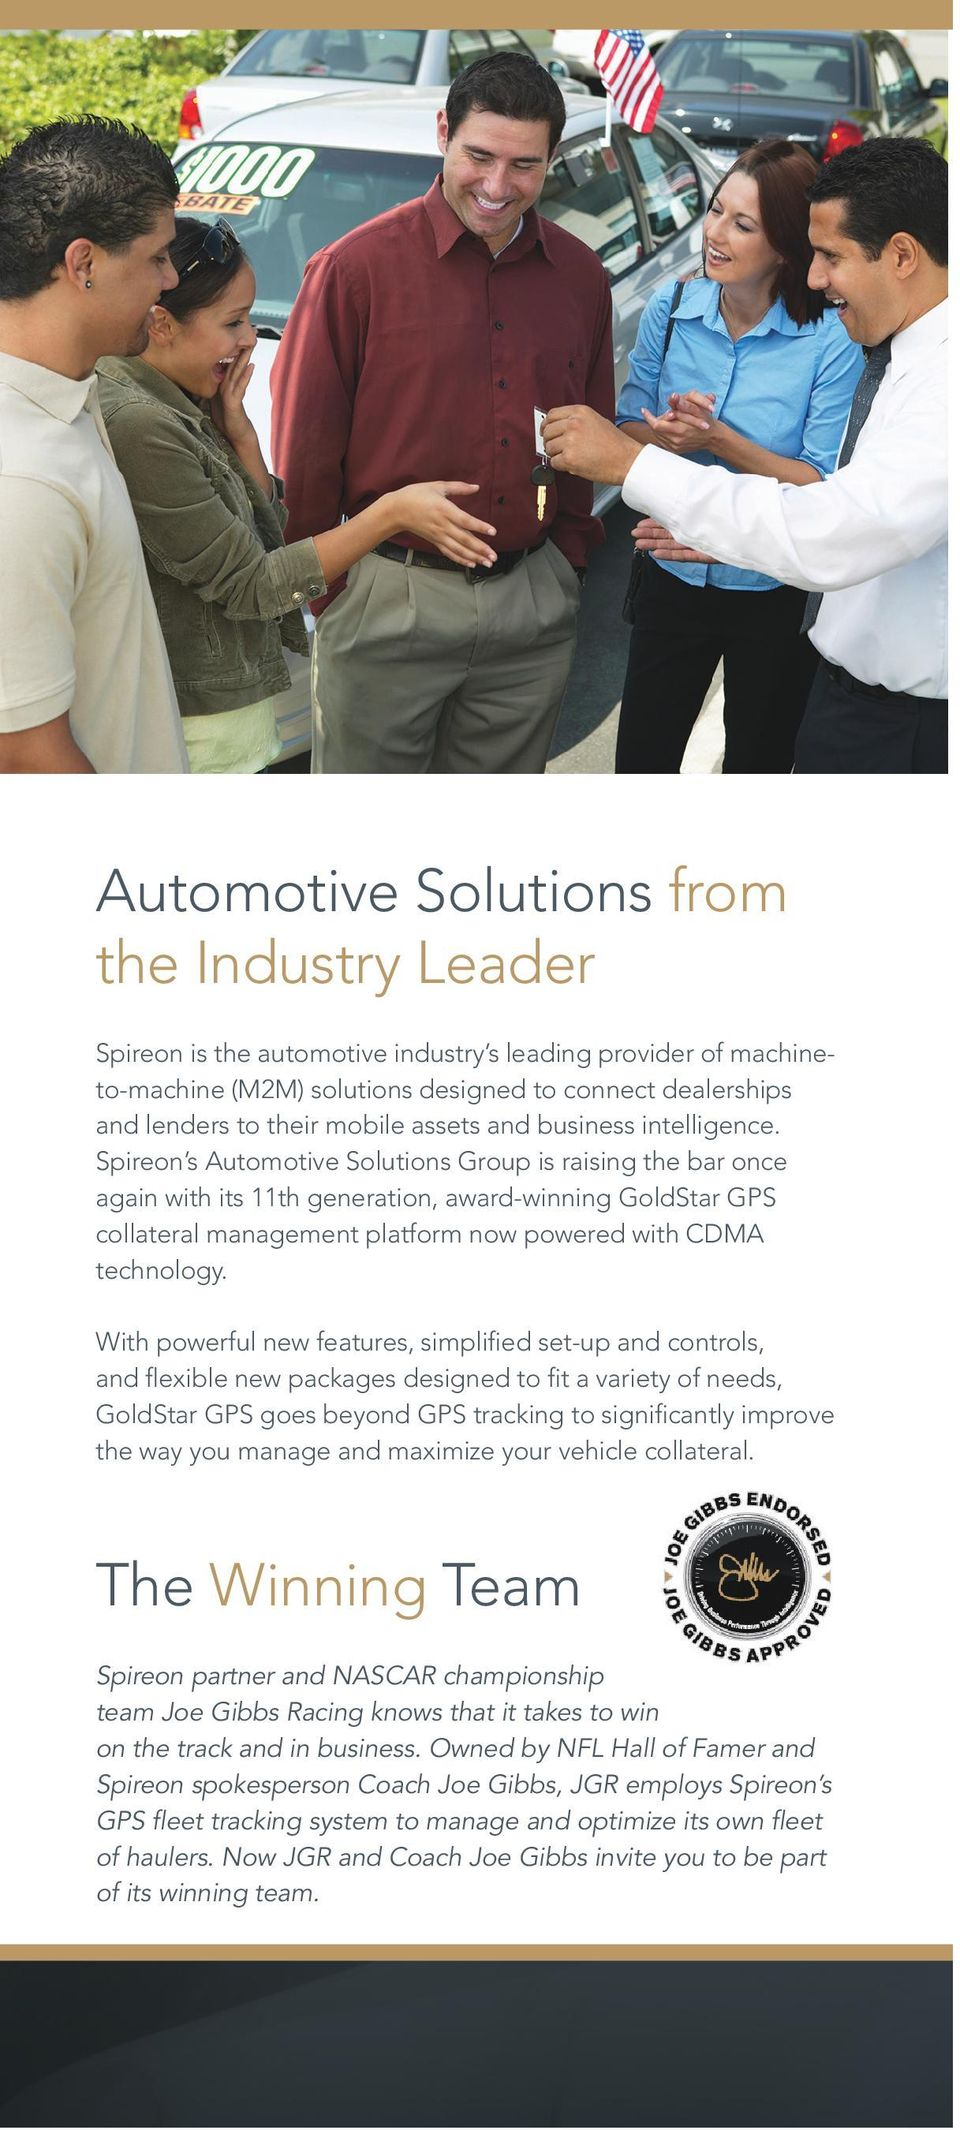 Spireon s Automotive Solutions Group is raising the bar once again with its 11th generation, award-winning GoldStar GPS collateral management platform now powered with CDMA technology.